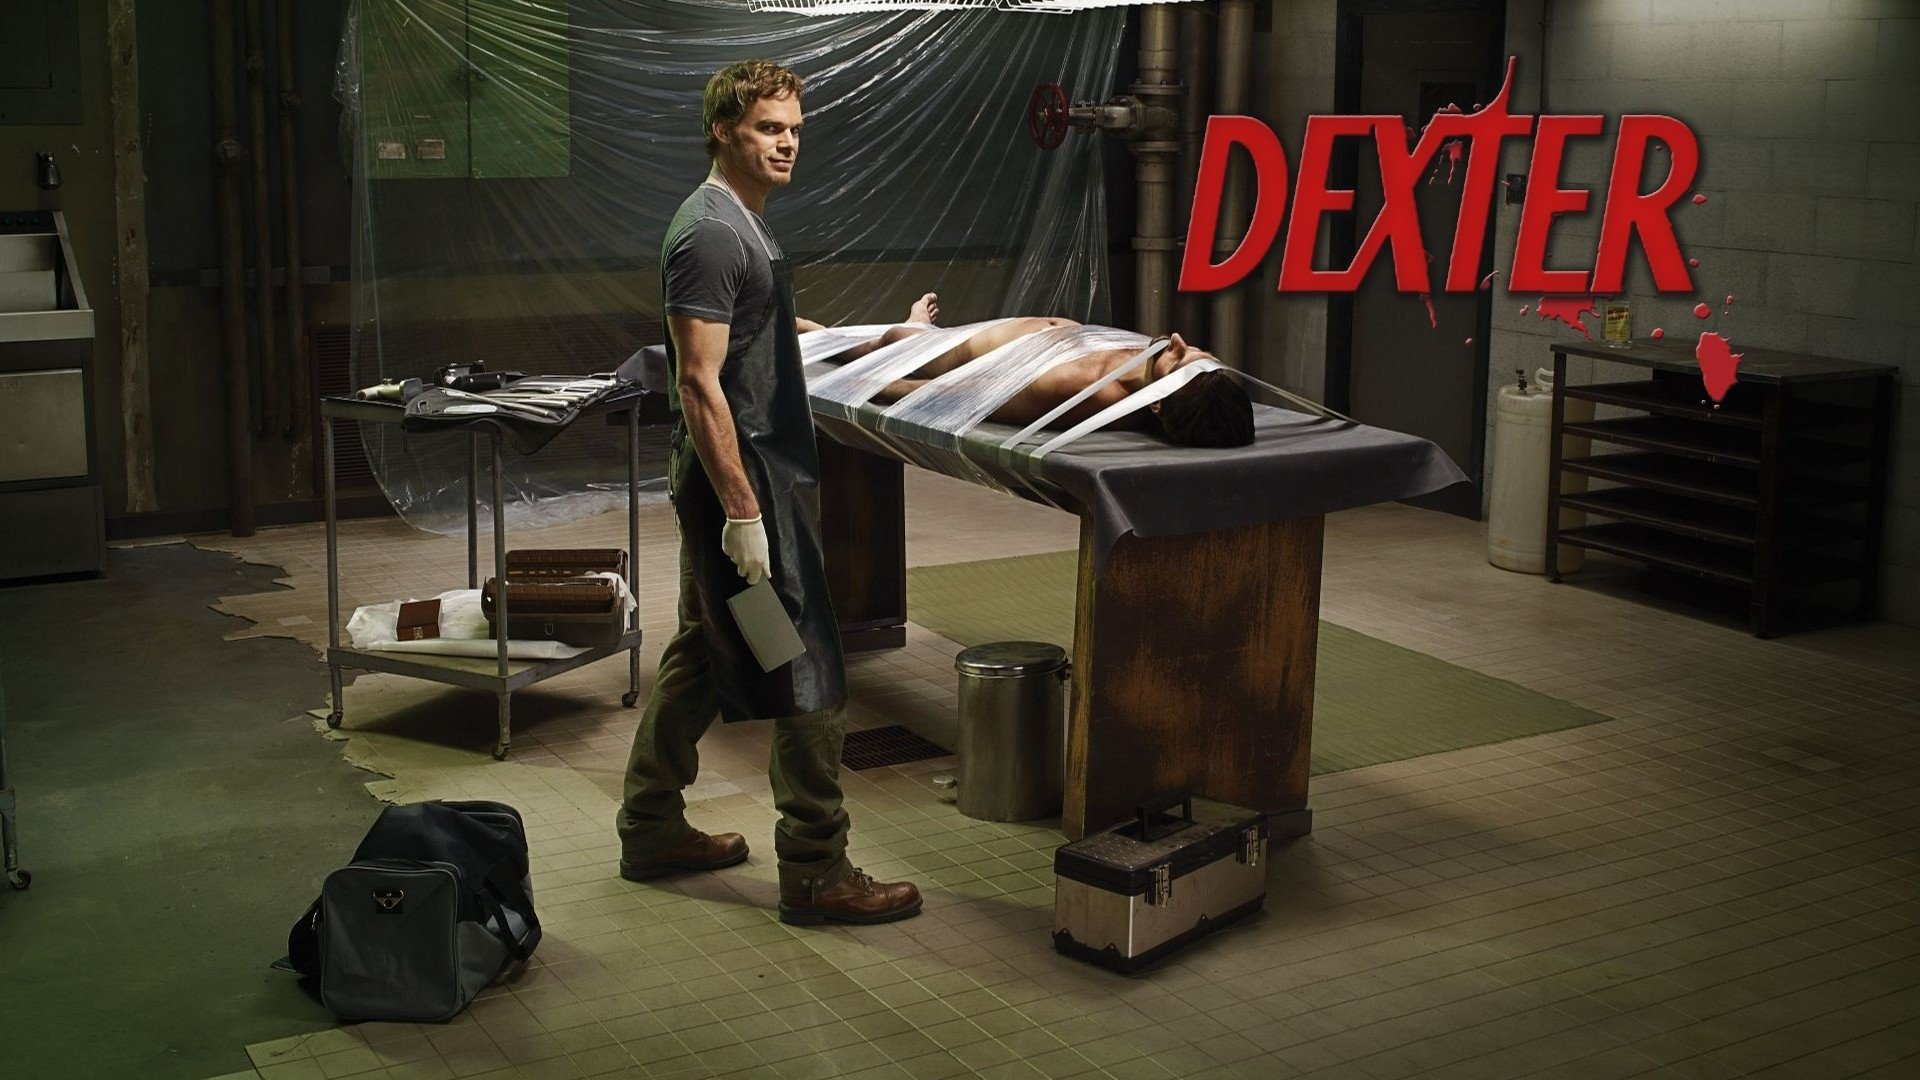 TV-program - Dexter  Michael C. Hall Dexter (TV Show) Dexter Morgan Bakgrund